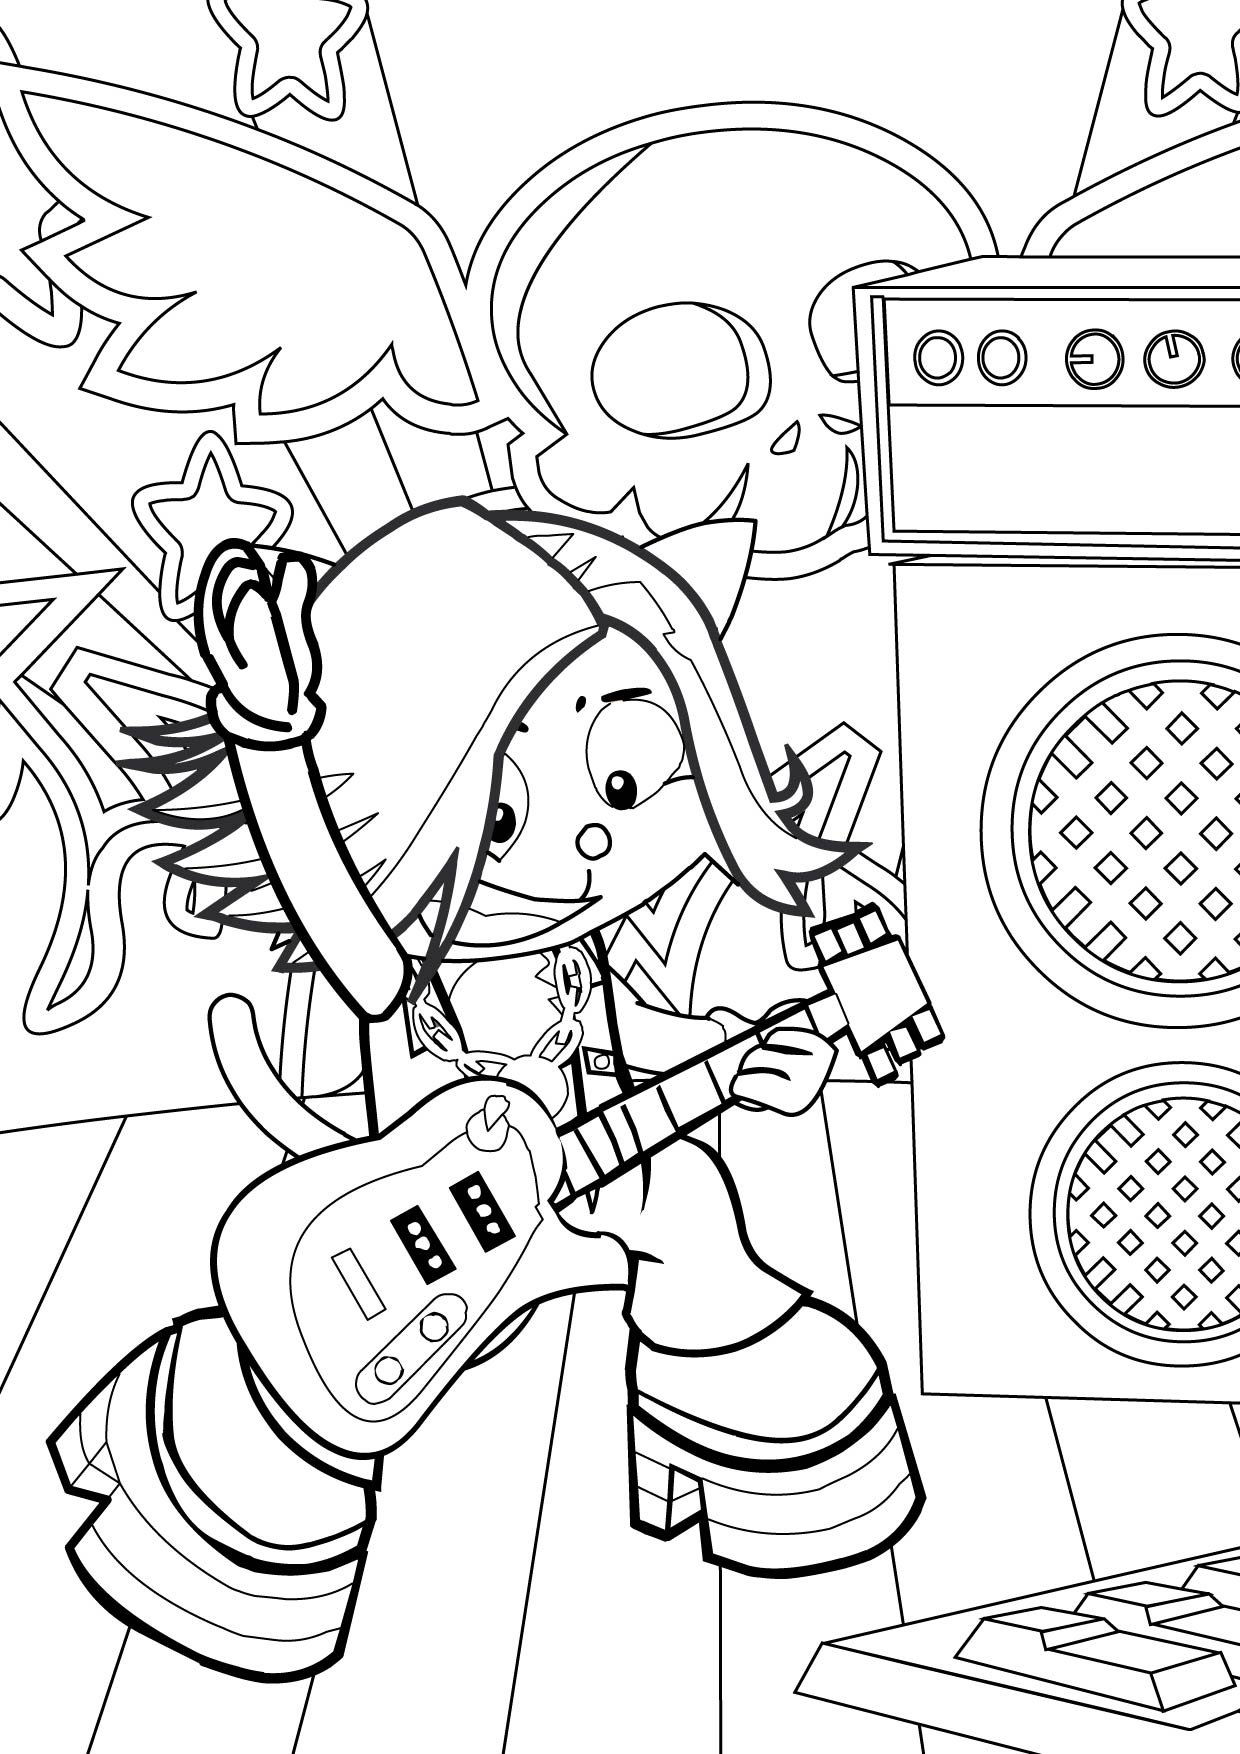 Rock Coloring Pages At Getdrawings Com Free For Personal Use Rock